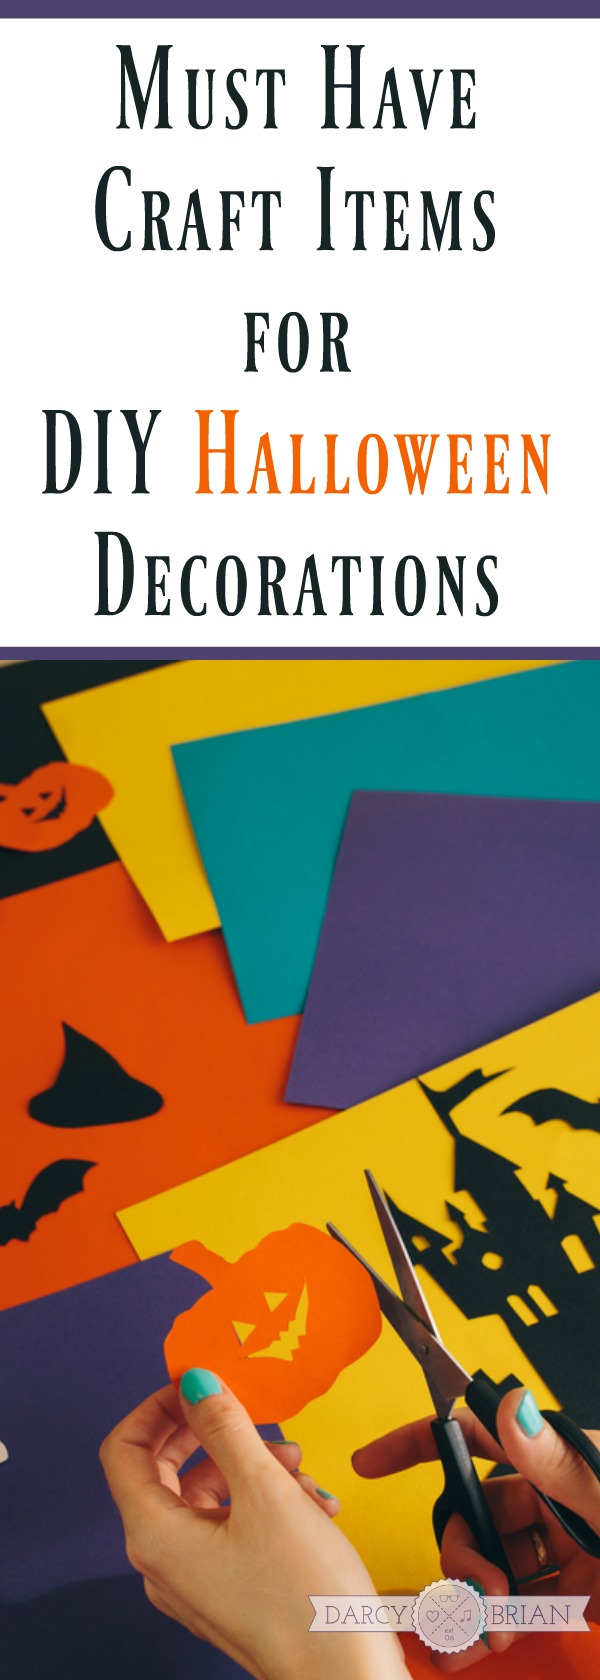 Get ready for some serious crafting with this craft supply list! Halloween Decoration Craft Items are a must if you are going to DIY your favorite ideas! Check out our master list for supplies you need!